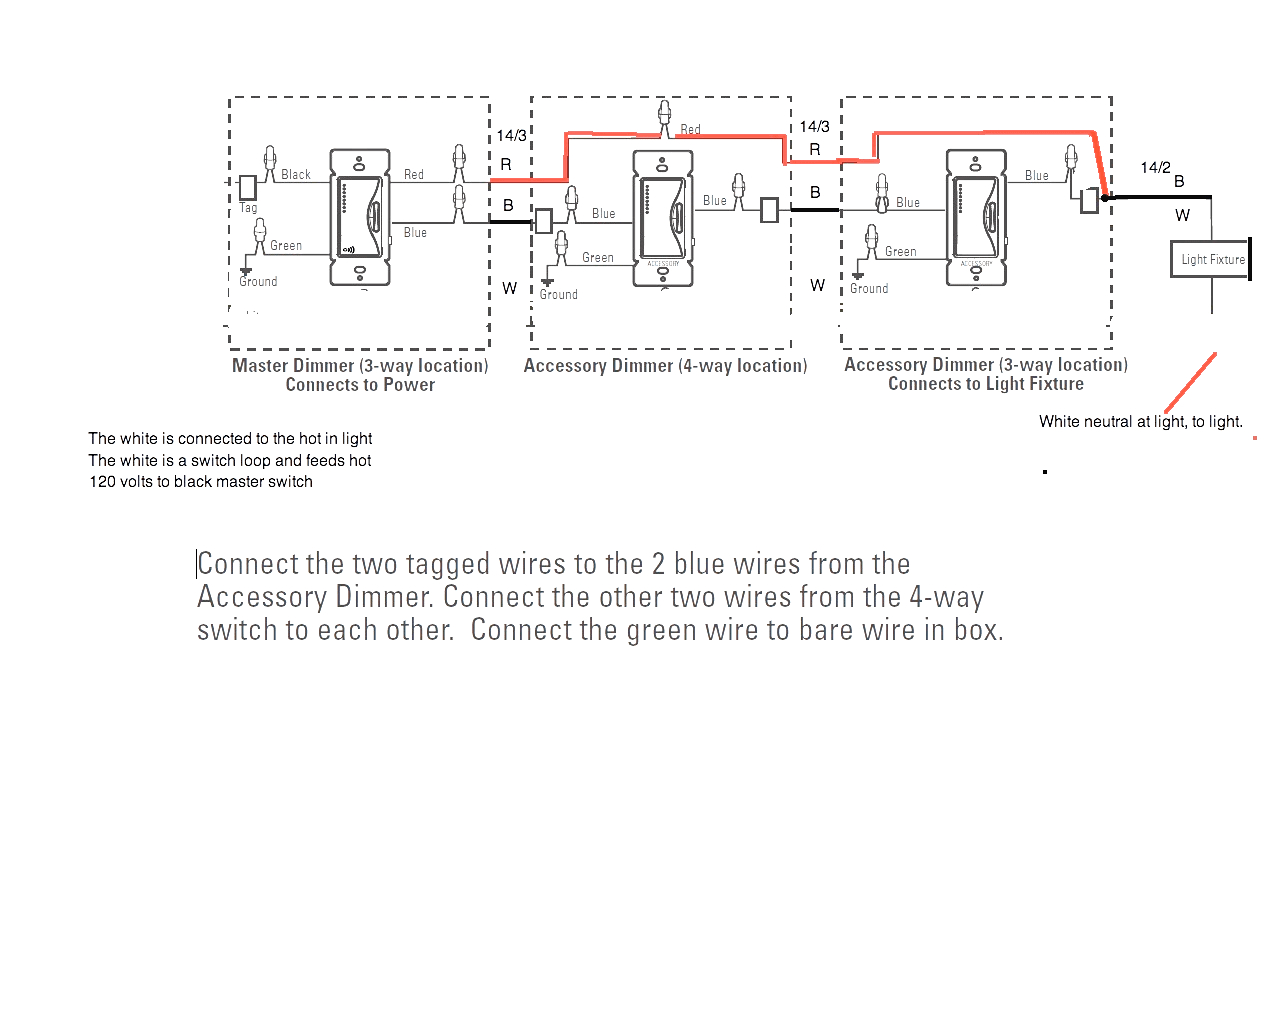 Lutron Dimmer 3 Way Wiring Diagram from wholefoodsonabudget.com